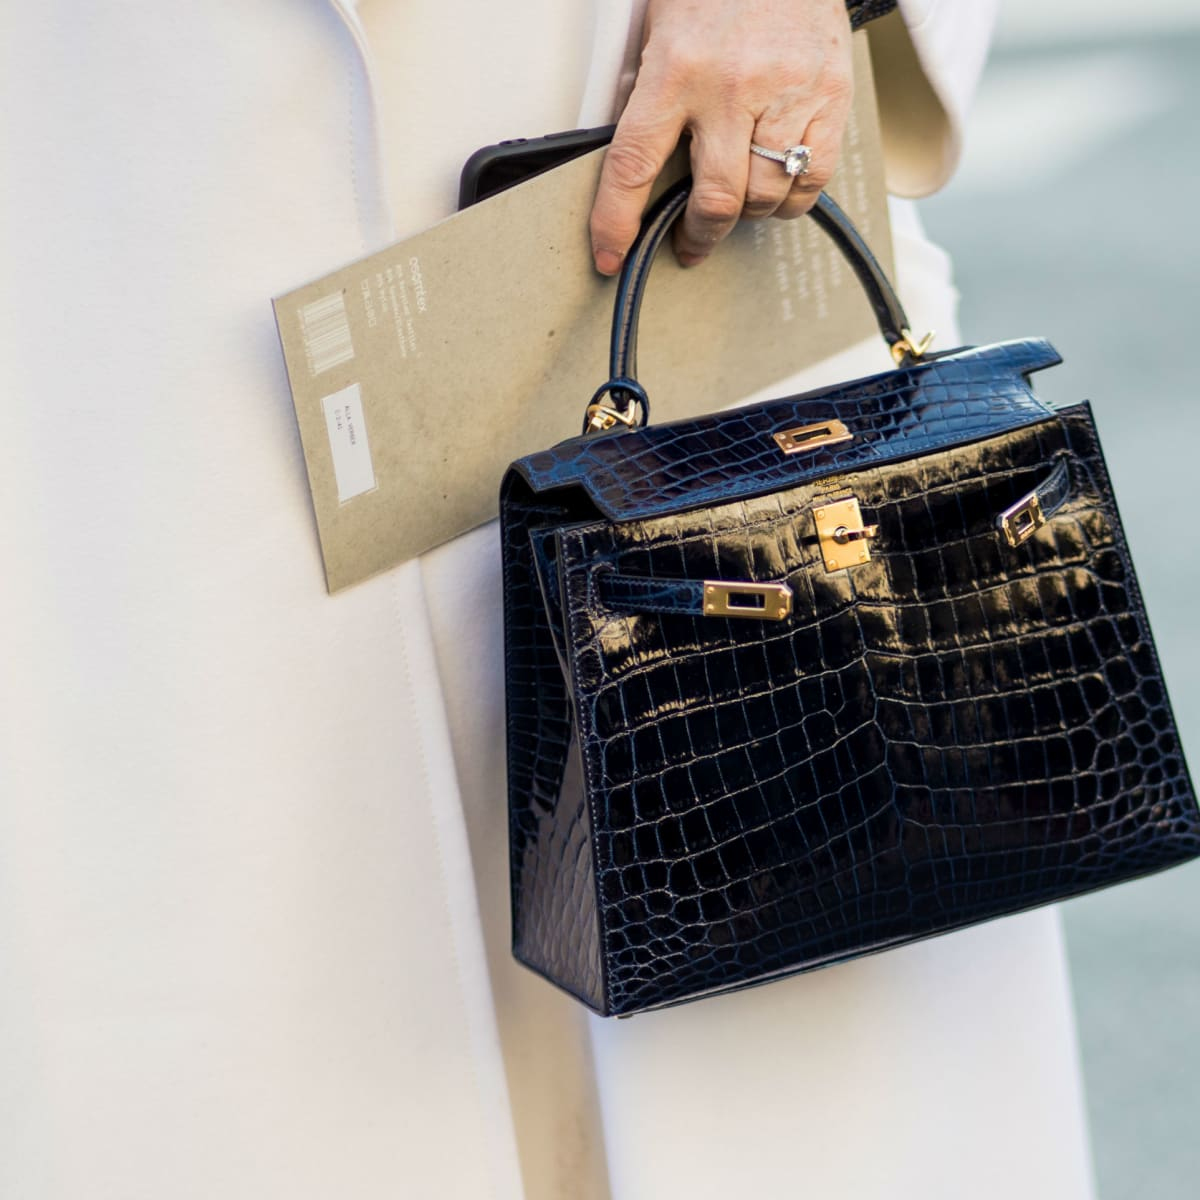 Counterfeit Handbags Are Getting Harder